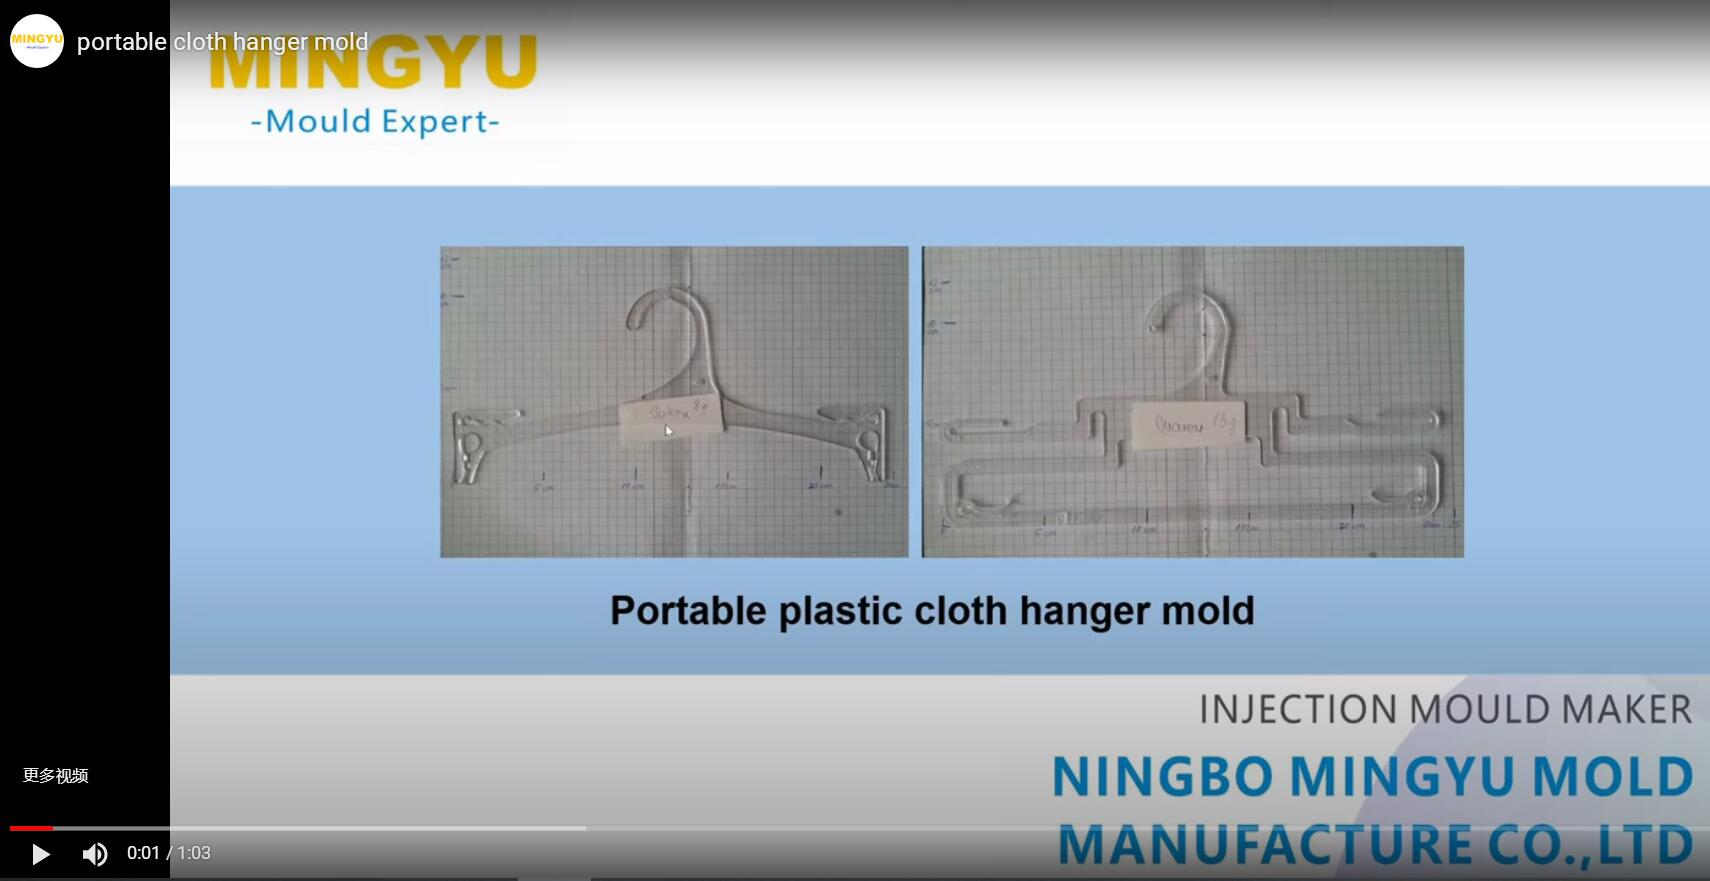 plastic cloth hanger mold showing video